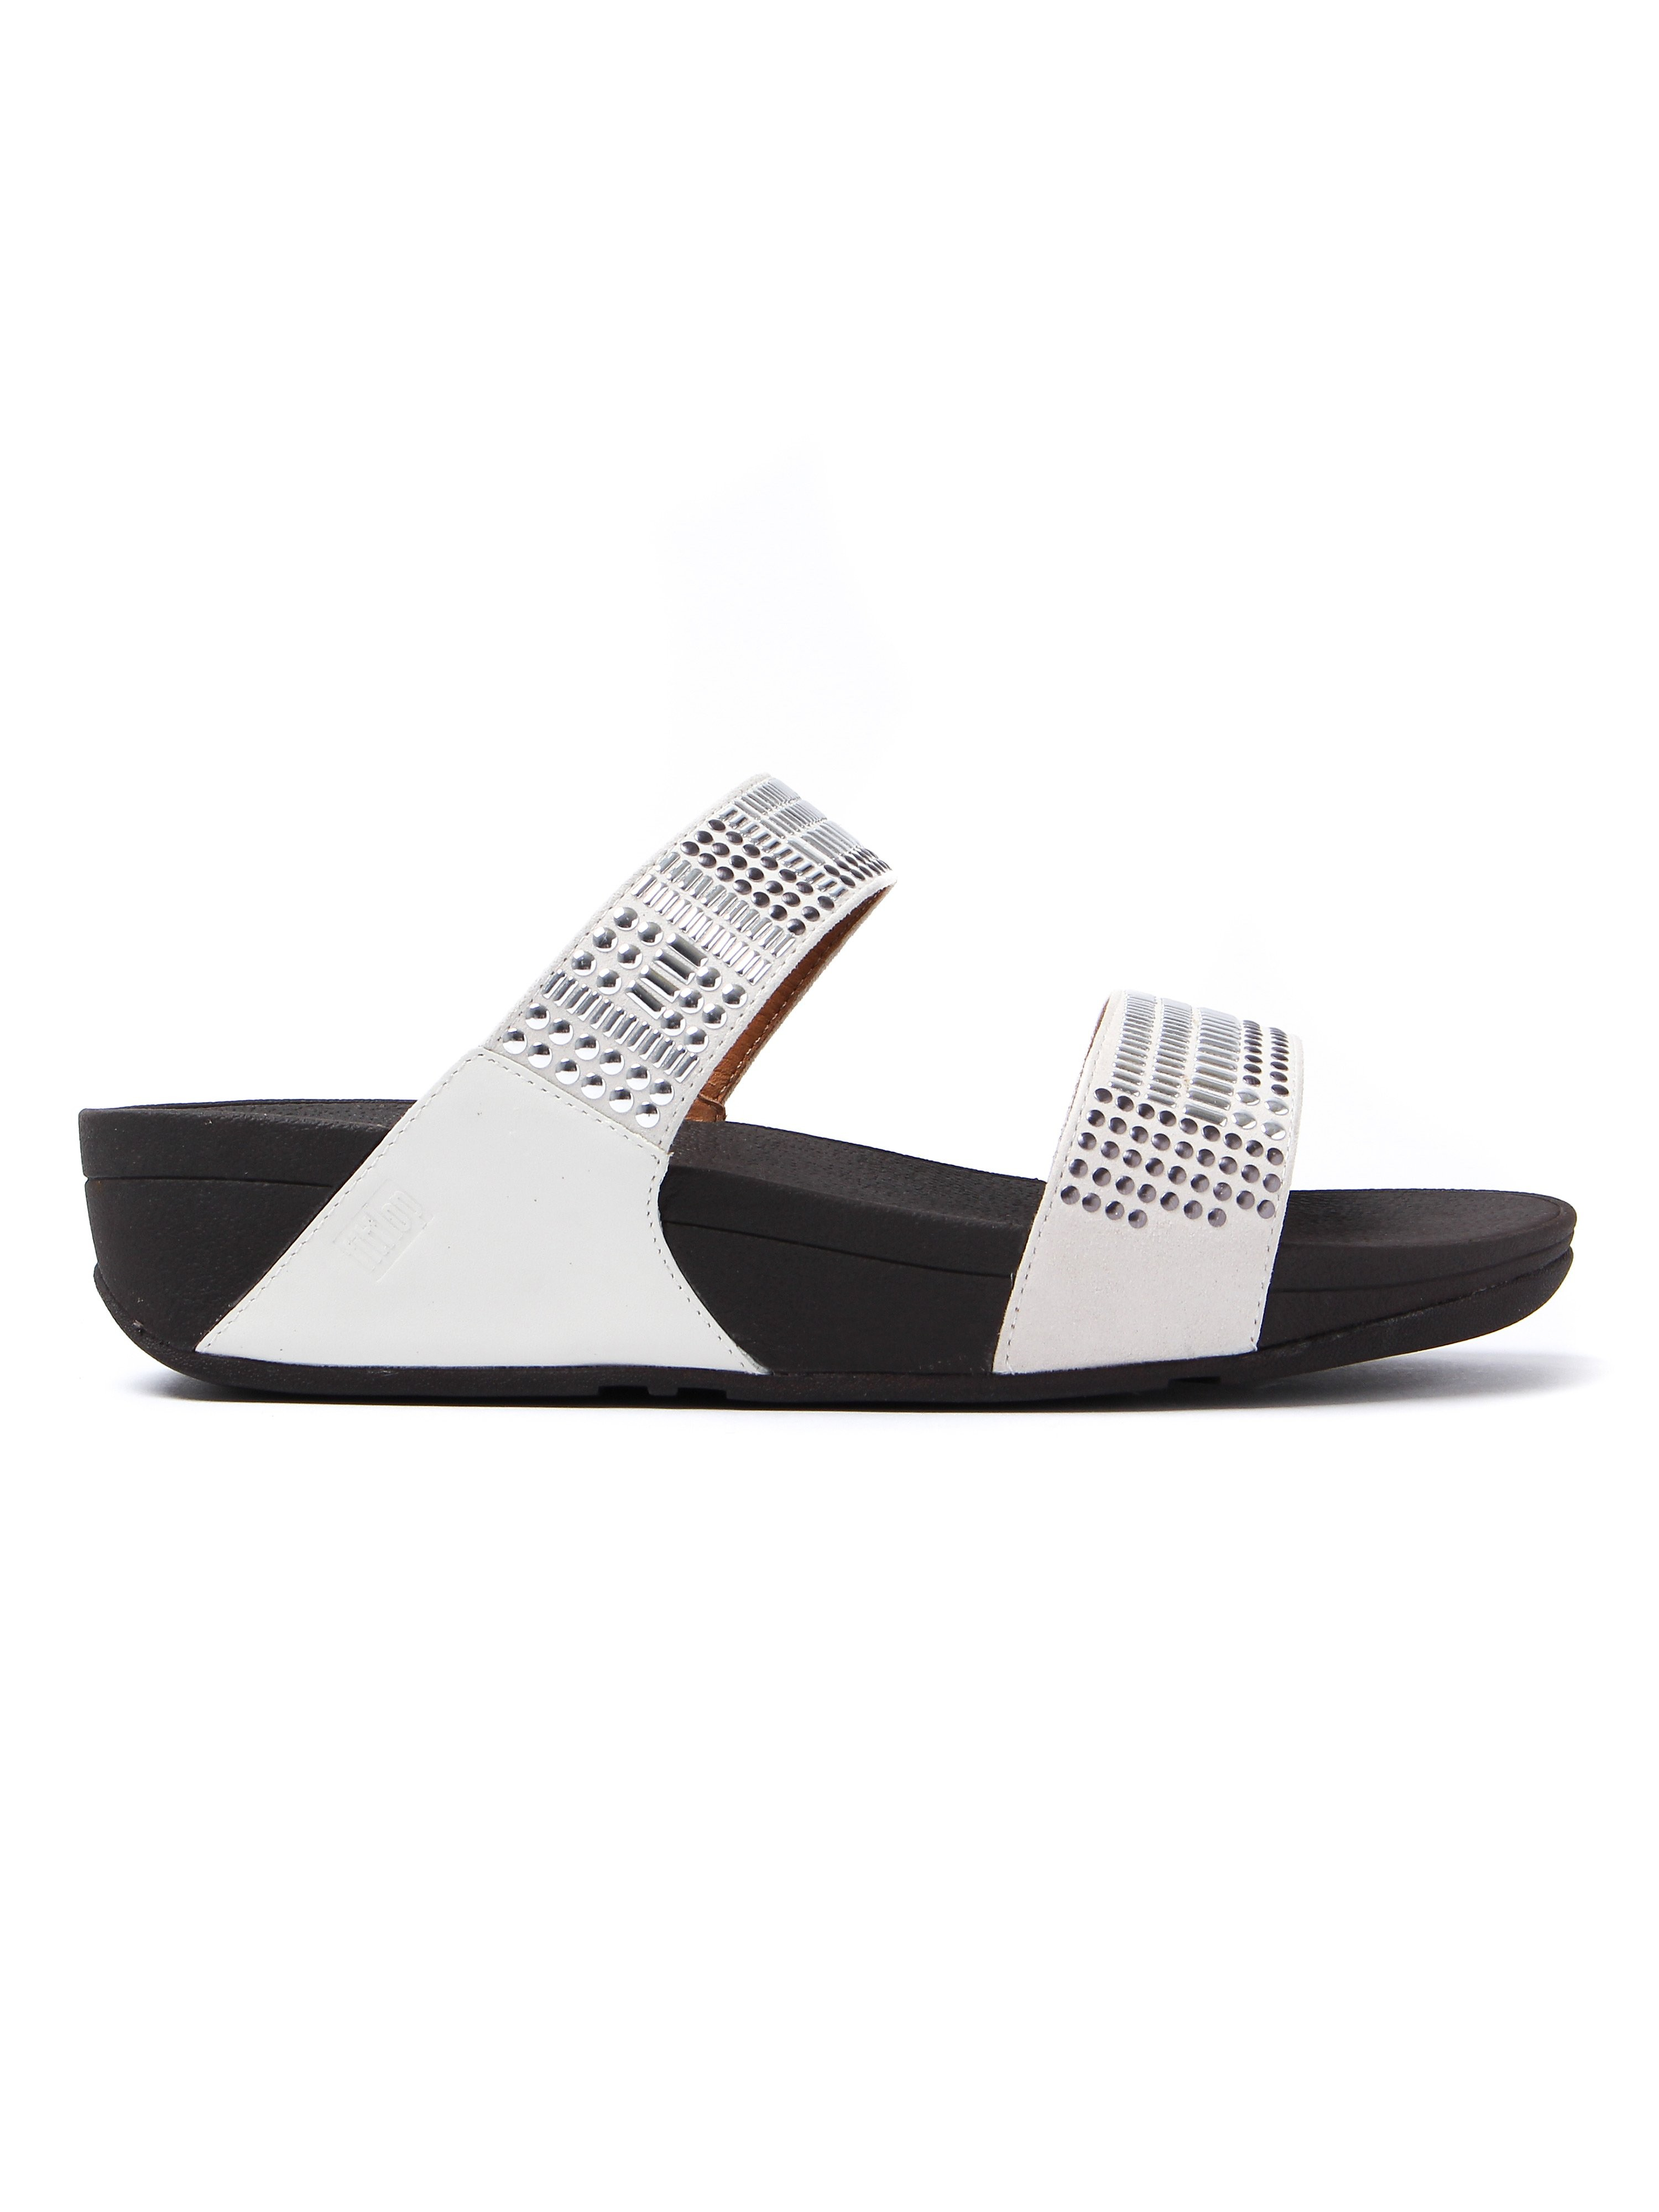 FitFlop  Women's Aztec Chada Slide Sandals - Urban White